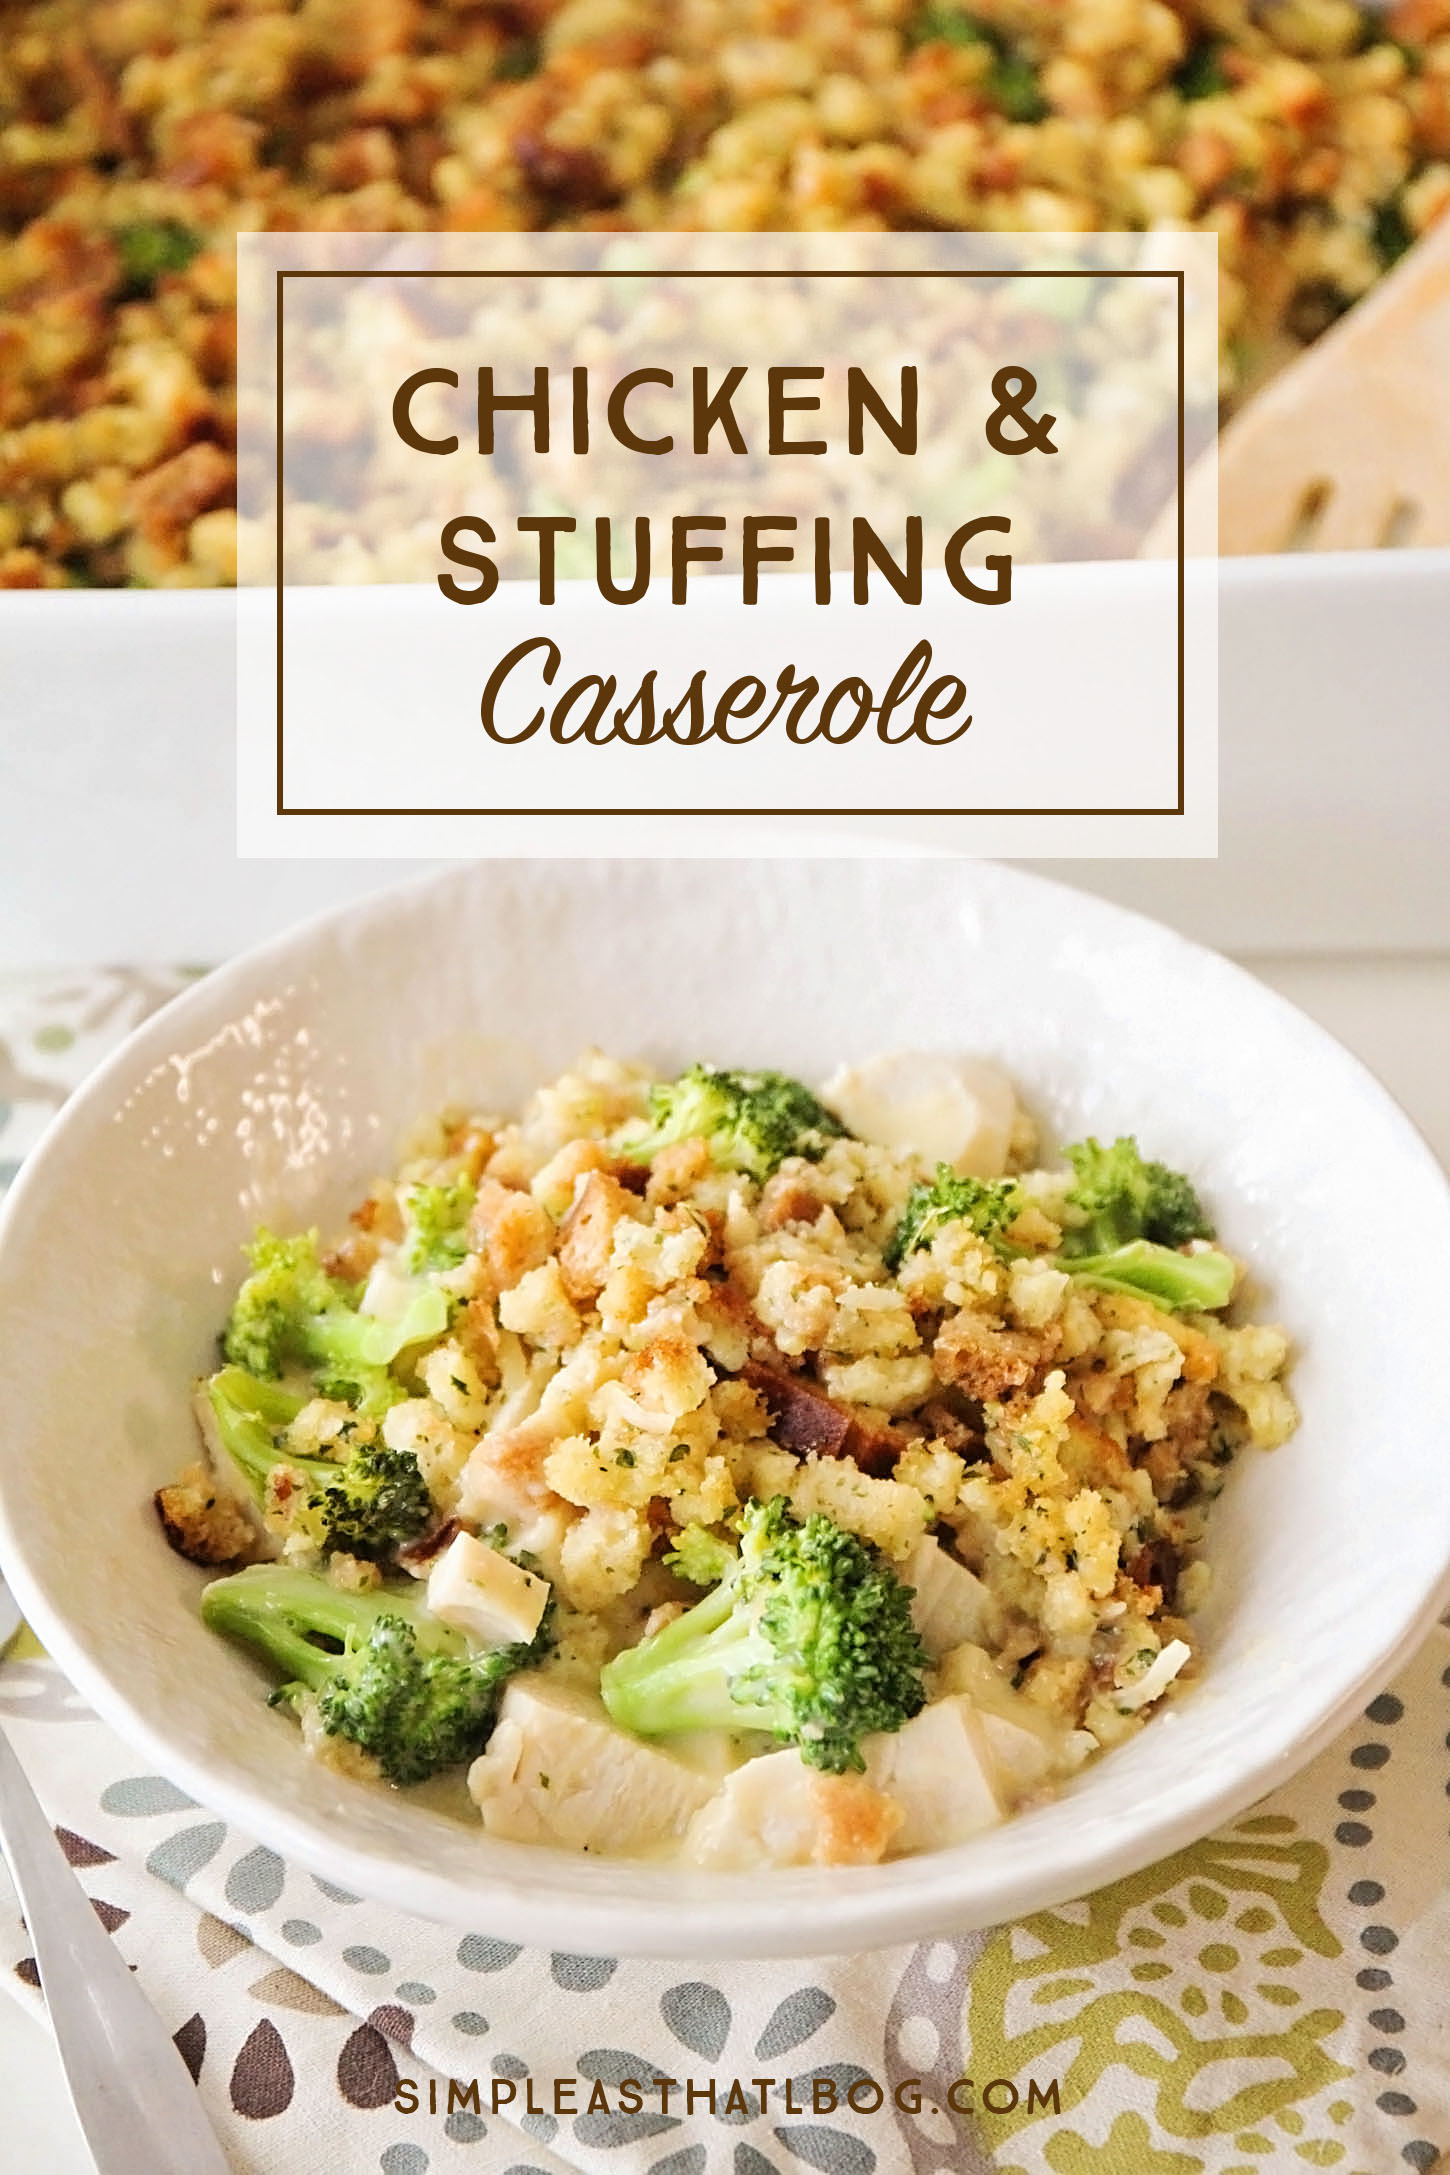 This creamy and cheesy casserole is comfort food at it's best and it's so easy to throw together!